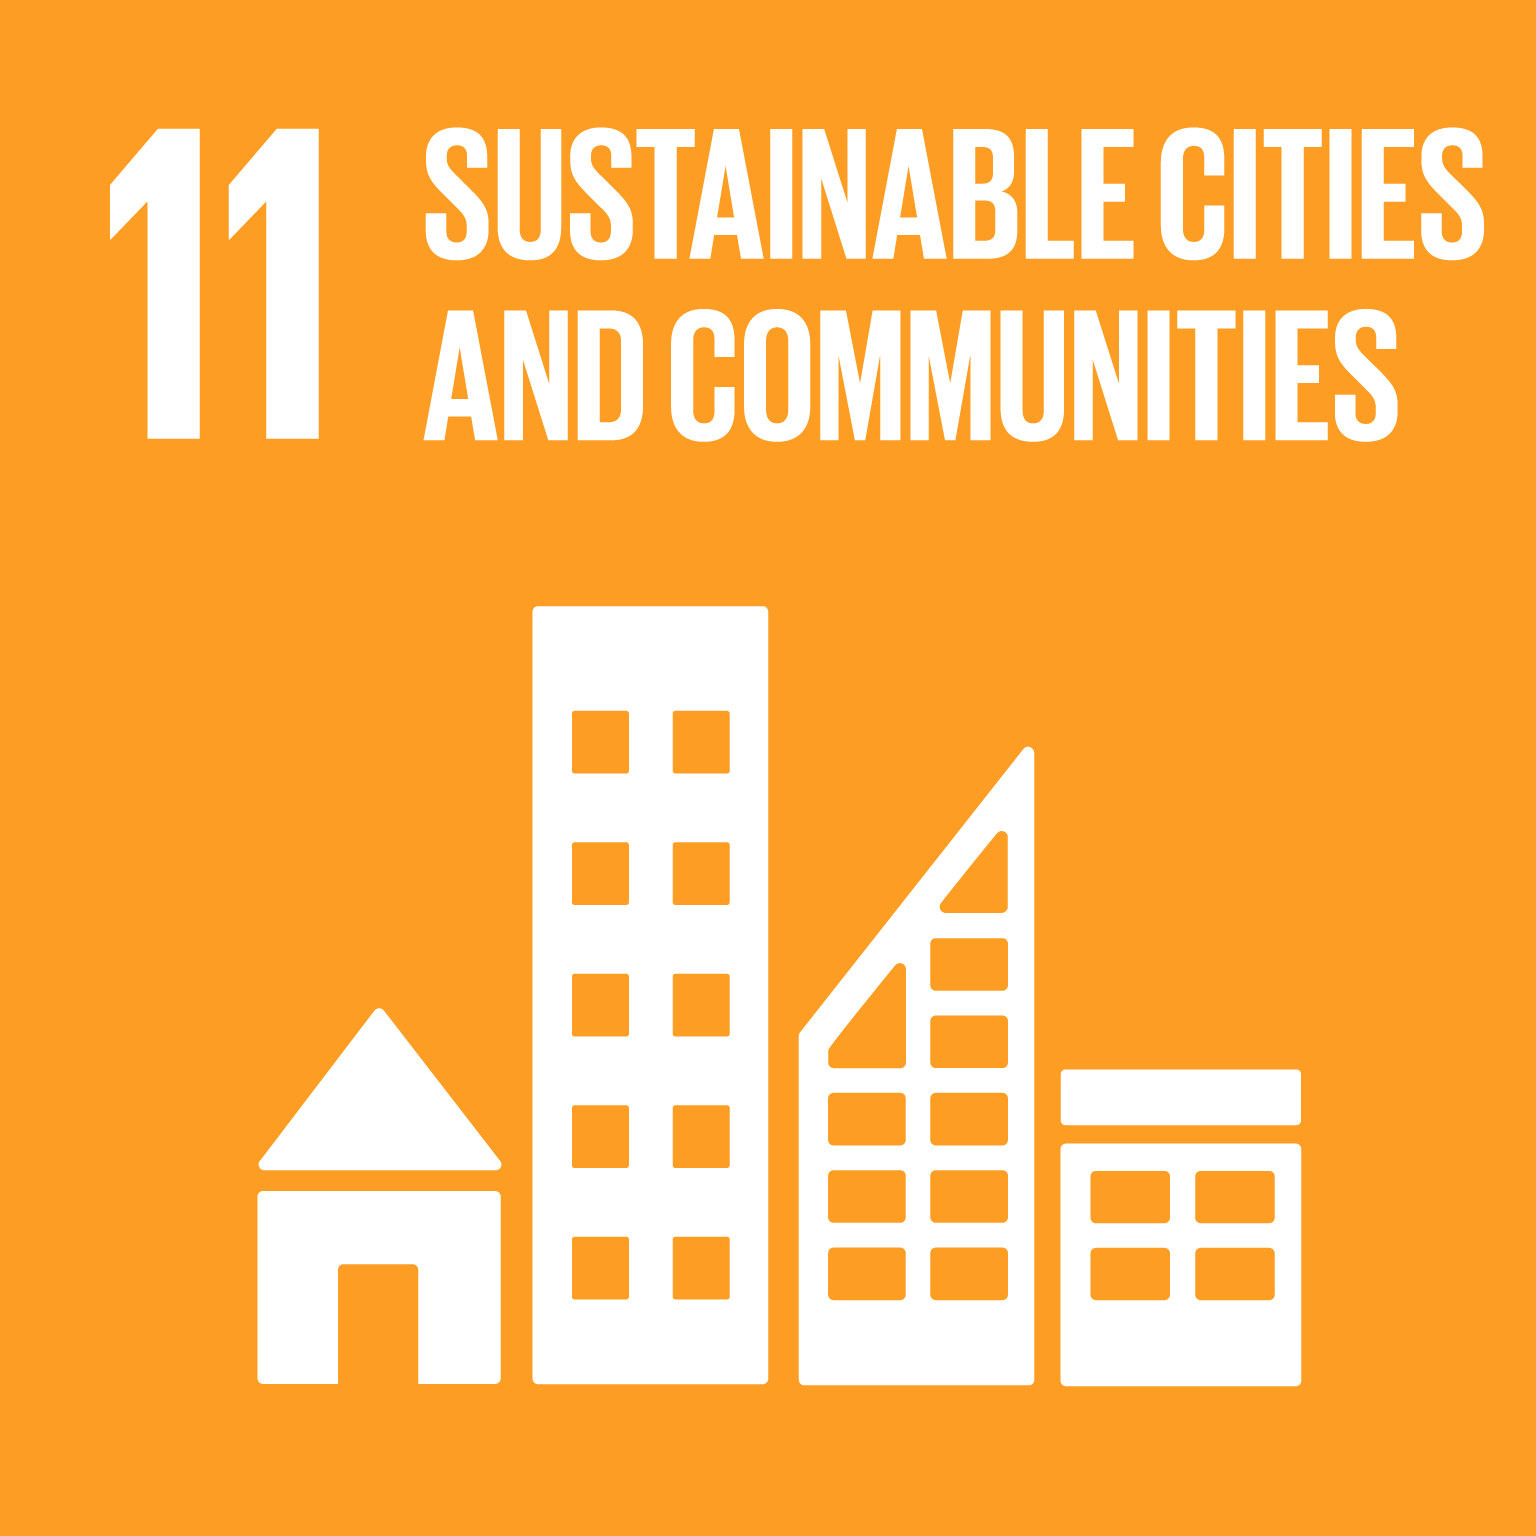 sdg icon #11 SUSTAINABLE CITIES AND COMMUNITIES